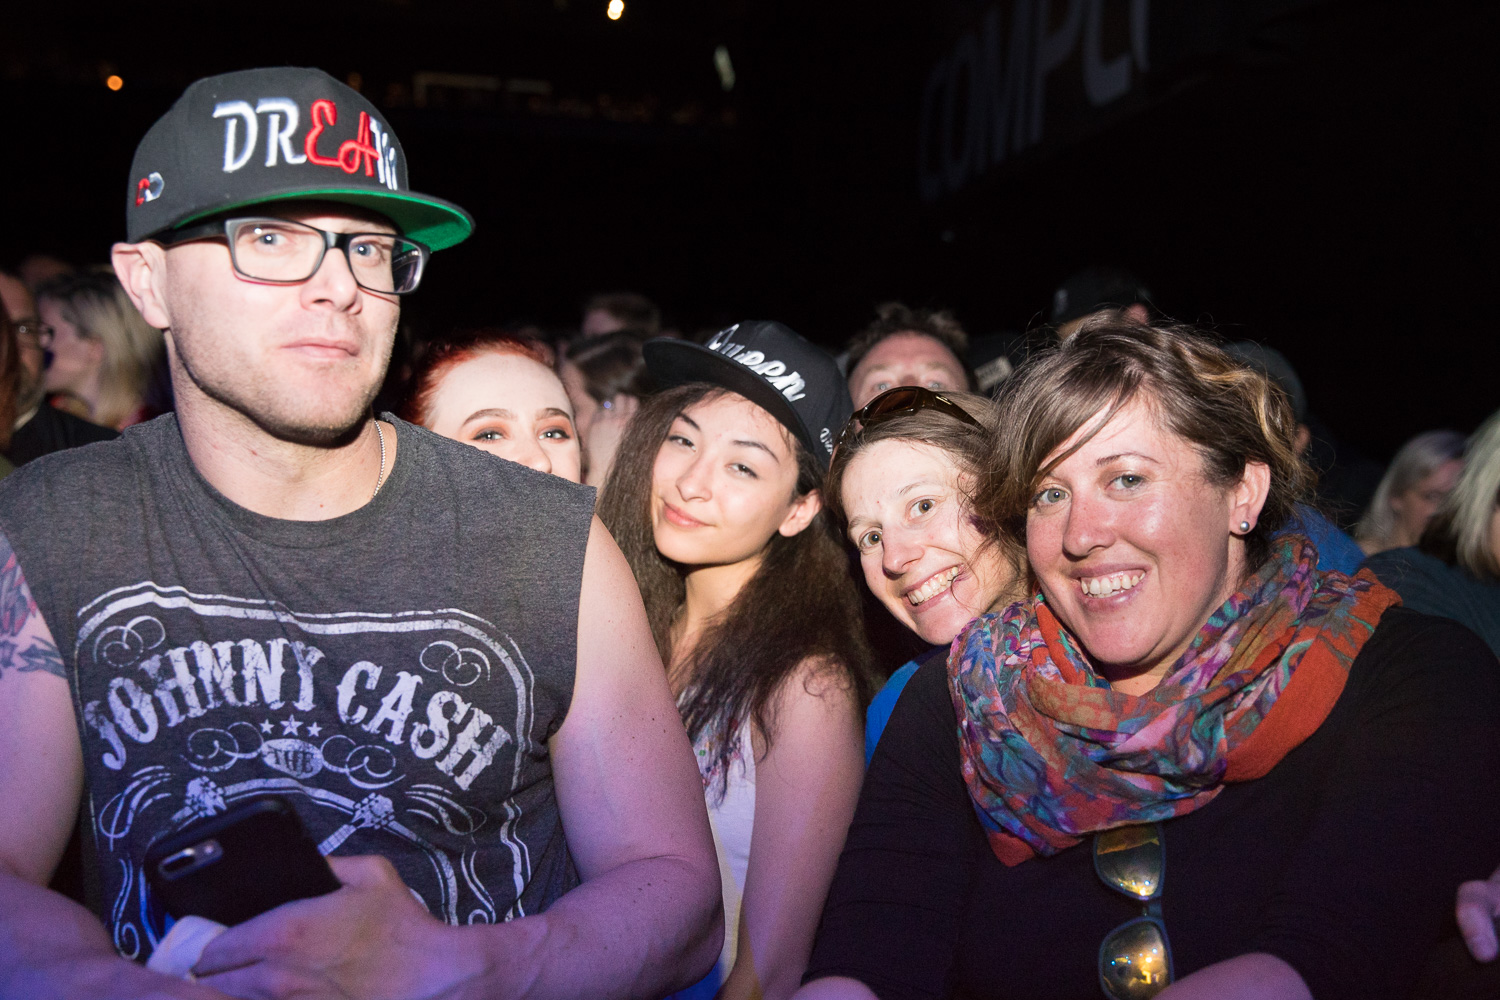 Jon, Kat, Andrea, Taylor, Victoria do not know each other, but they know K.Flay.